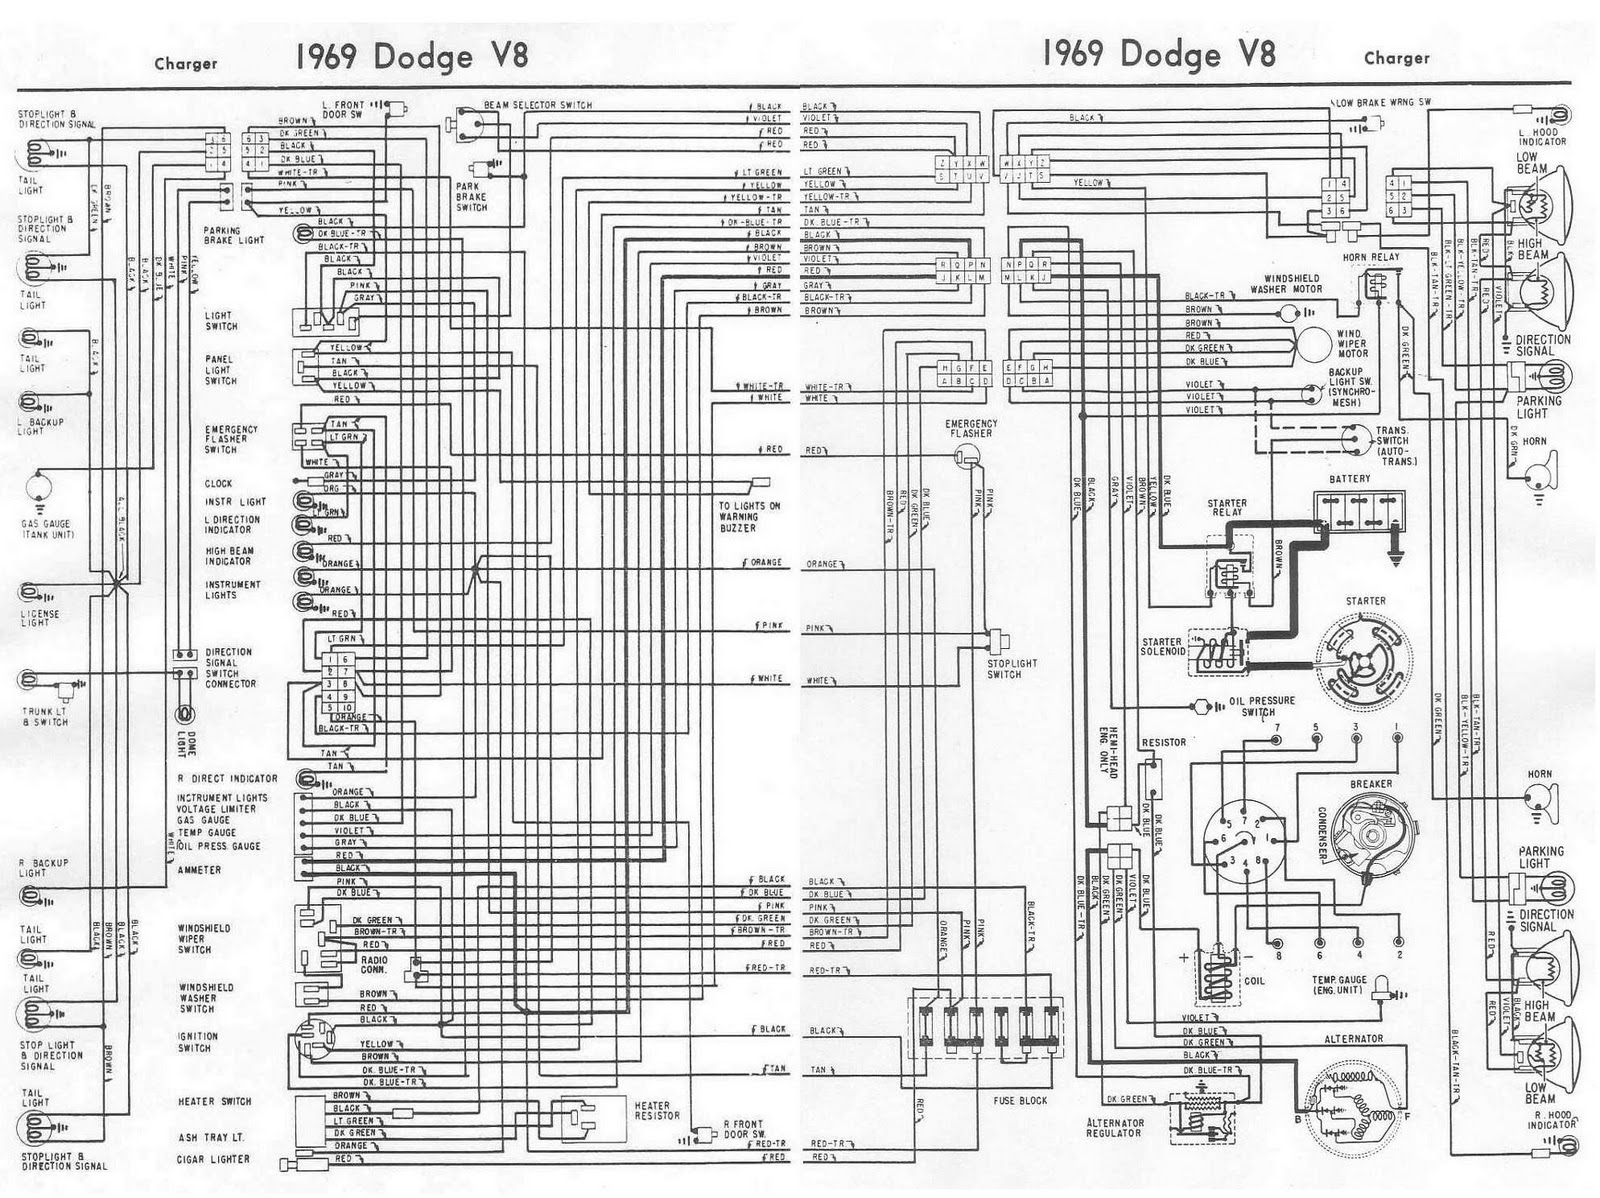 medium resolution of dodge charger 1969 v8 complete electrical wiring diagram 2012 dodge charger police package wiring diagram 2012 dodge charger police package wiring diagram